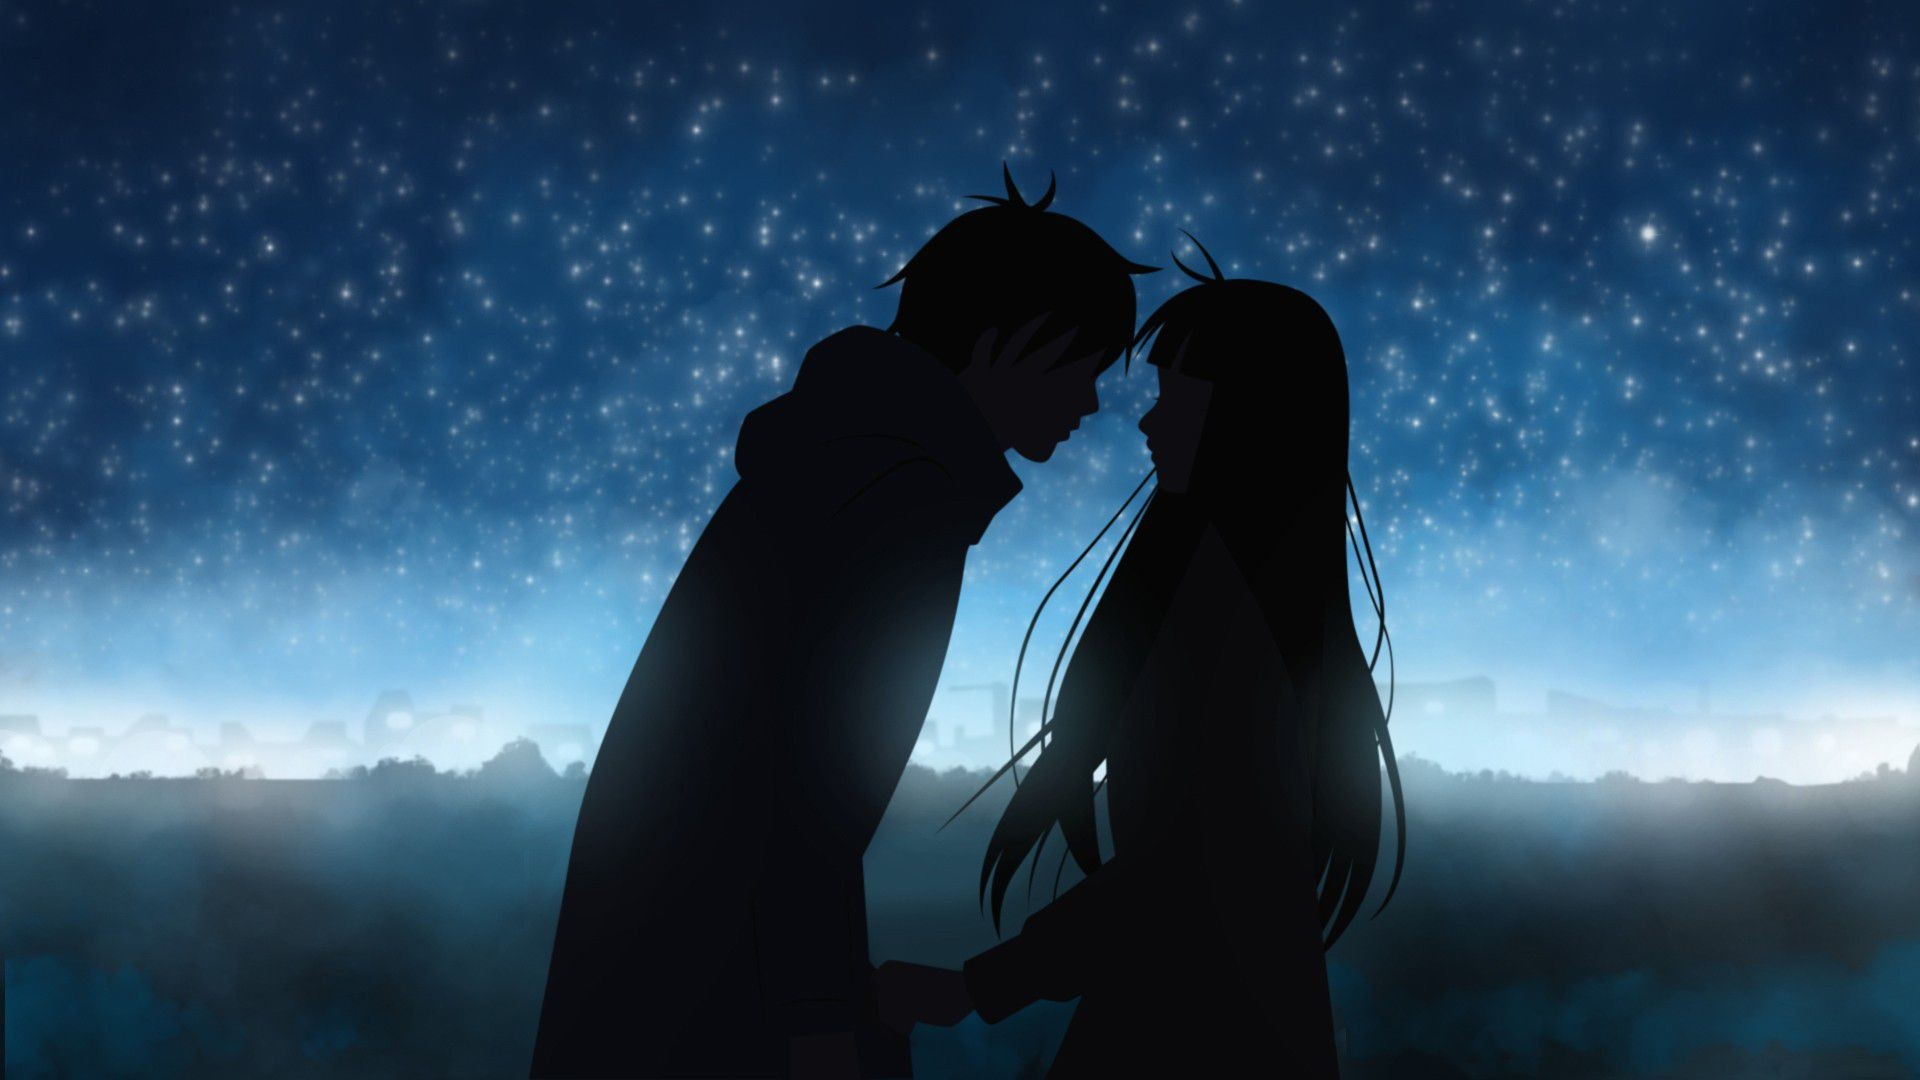 anime couples hd wallpapers